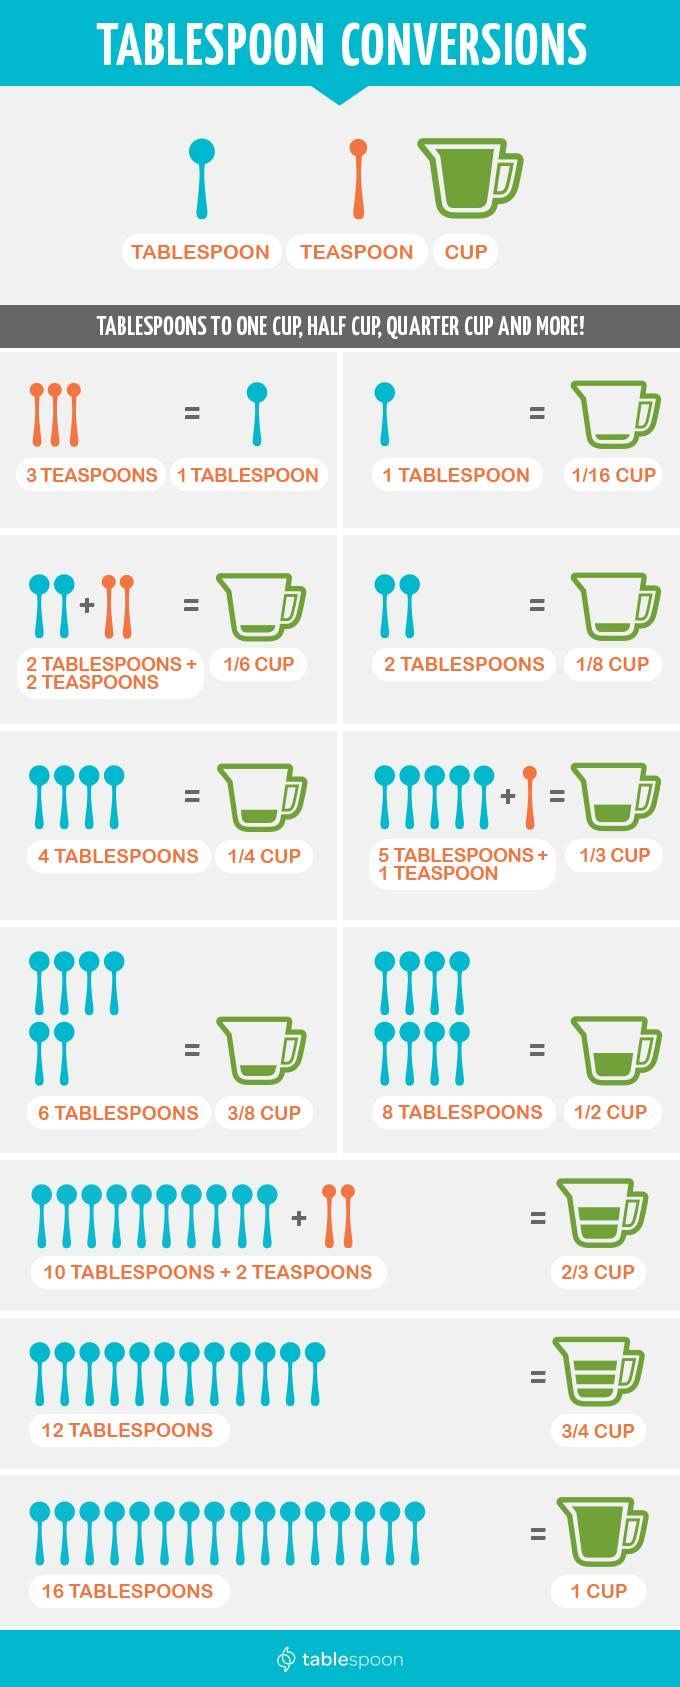 Measurement Conversions Tablespoon Teaspoon And Cups Wet And